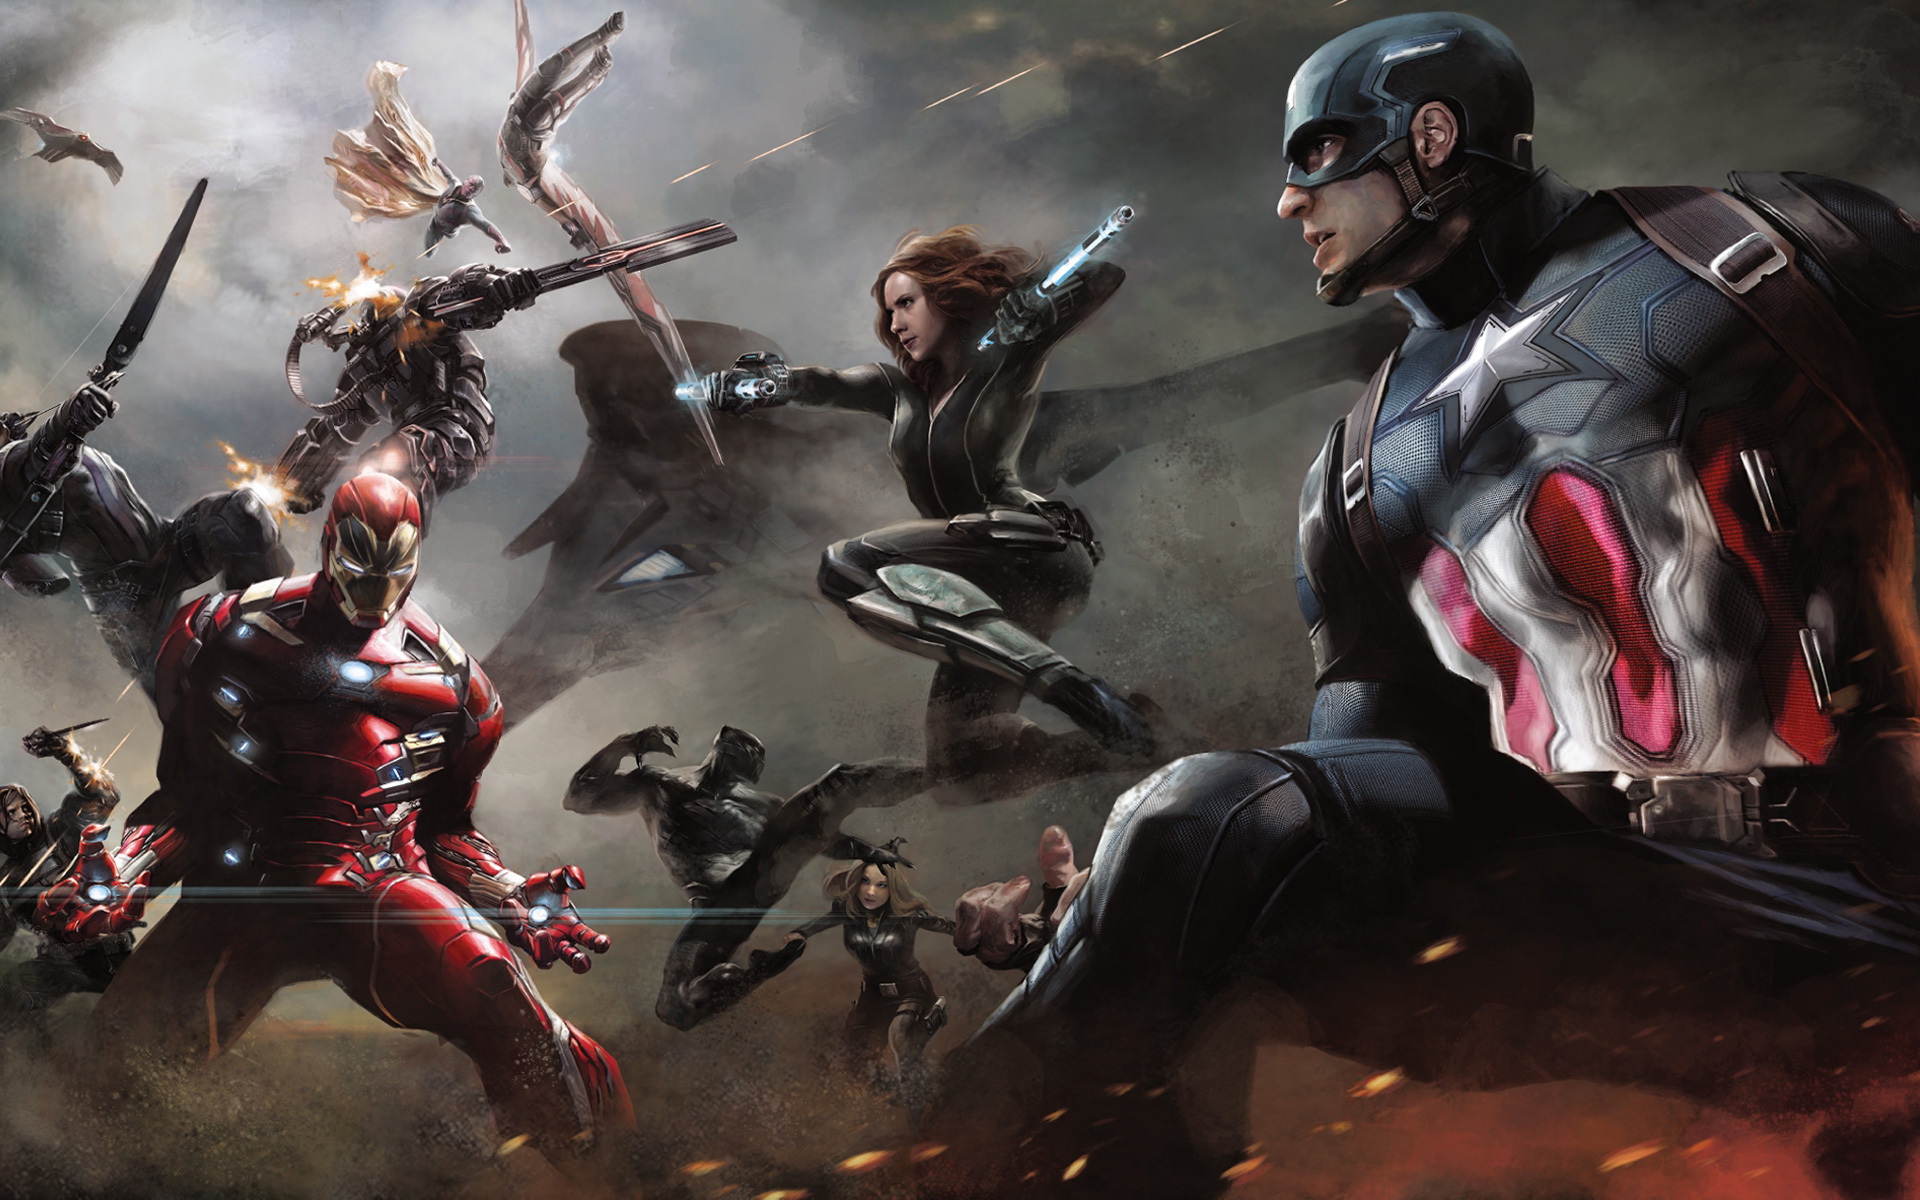 Wonderful Wallpaper Movie Captain America Civil War - captain_america_civil_war_artwork-widescreen_wallpapers  Perfect Image Reference_611537.jpg